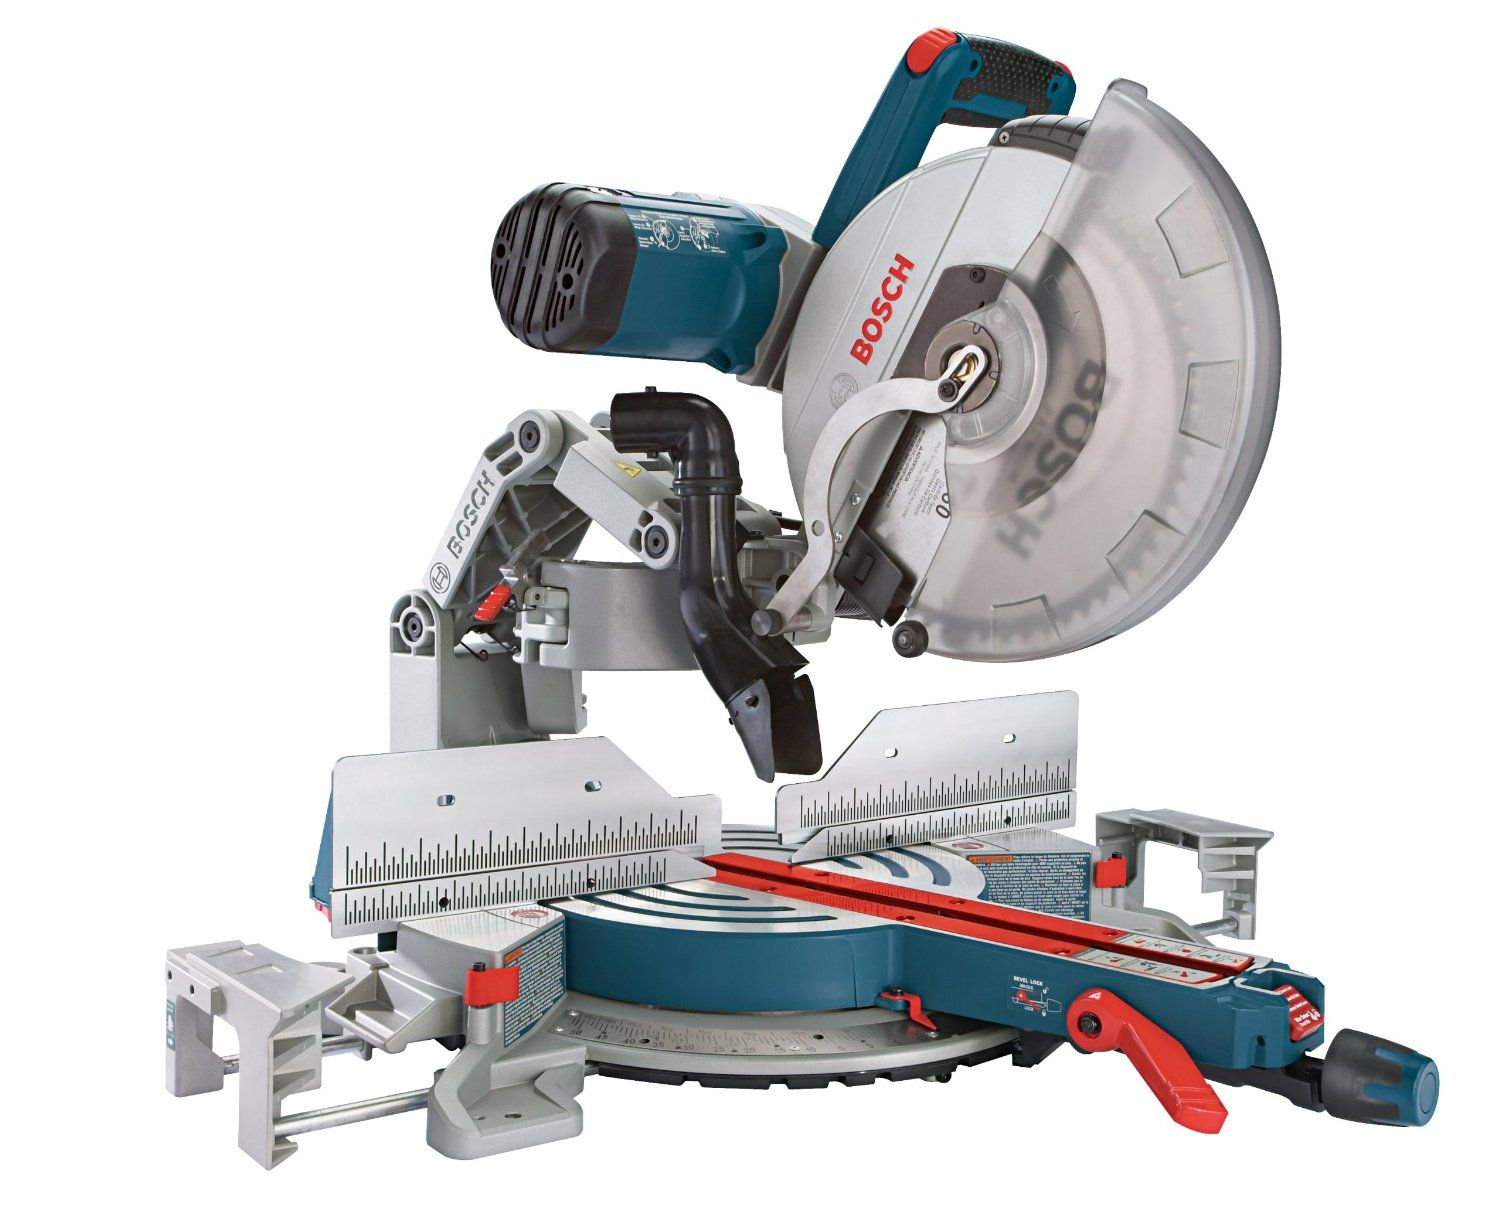 Bosch Gcm12sd 120 Volt 12 Inch Db Glide Miter Saw Check This Awesome Product By Going To The Link At The Image Bosch Tools Bosch Miter Saw Sliding Mitre Saw